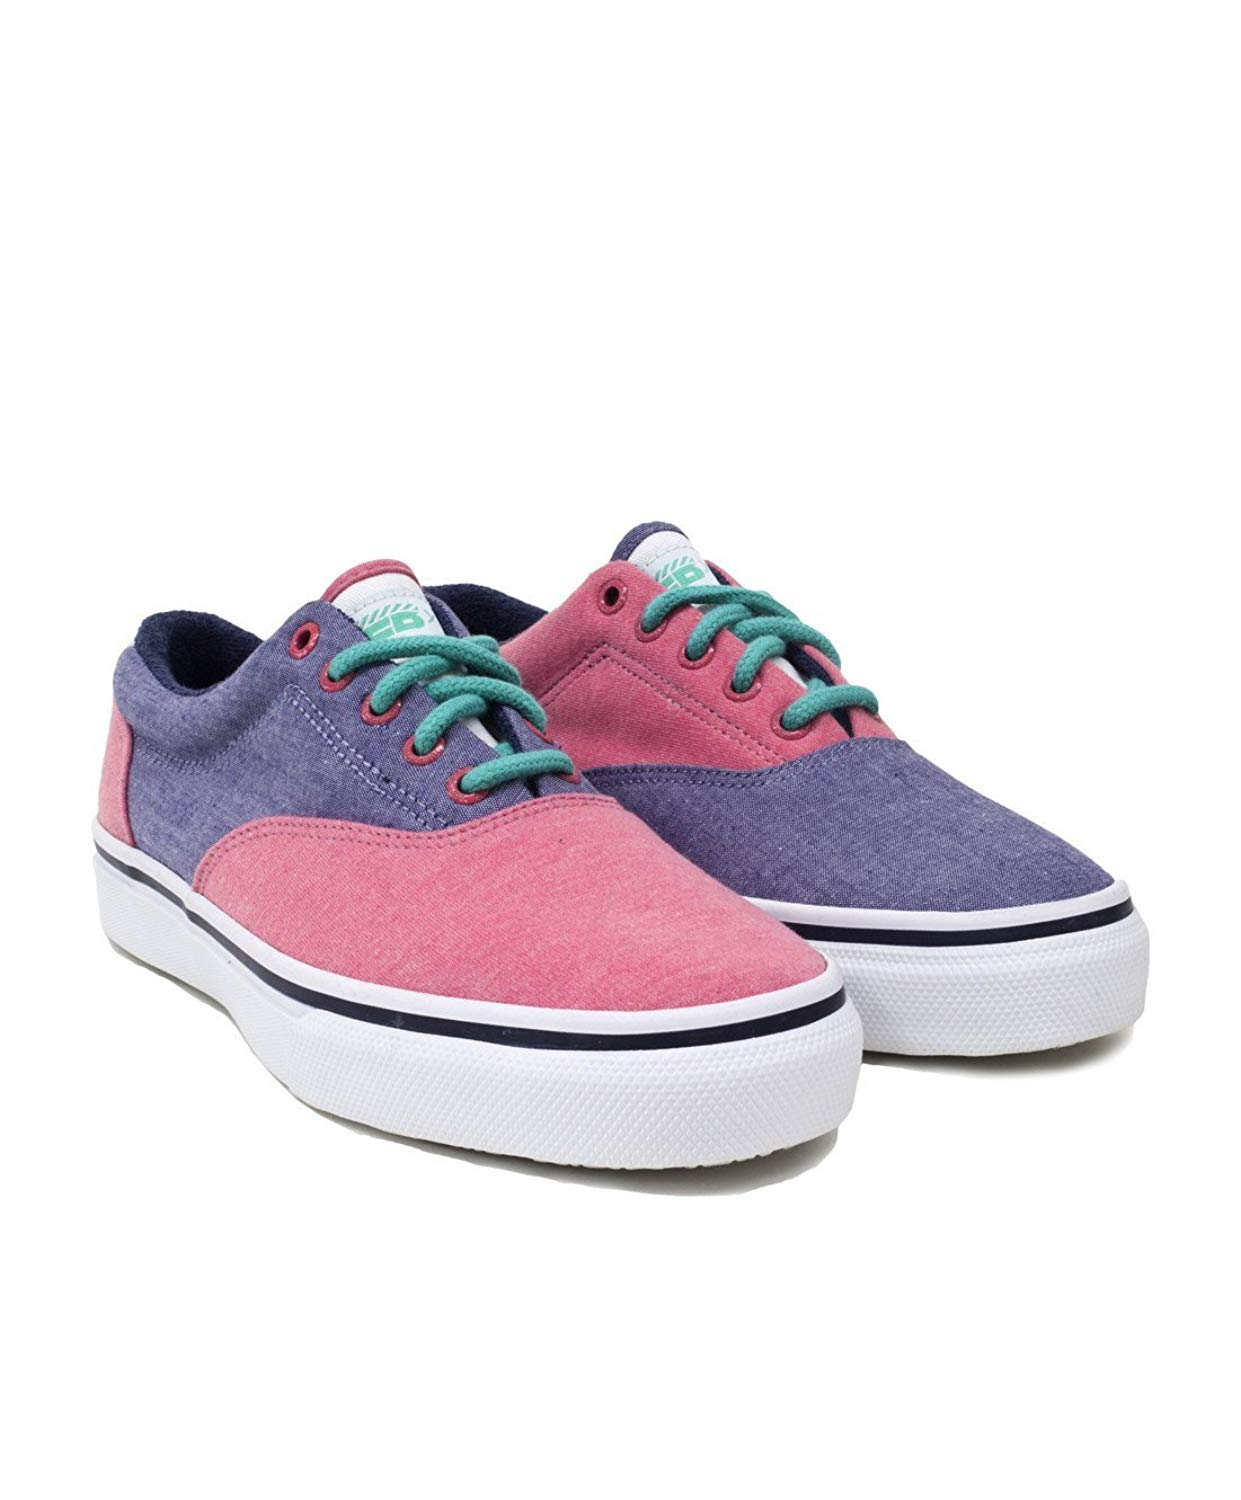 40f330f63a81 Get Quotations · Sperry Top-Sider Extra Butter Caddy Shack Striper Multi  Lace Up Fashion Sneakers